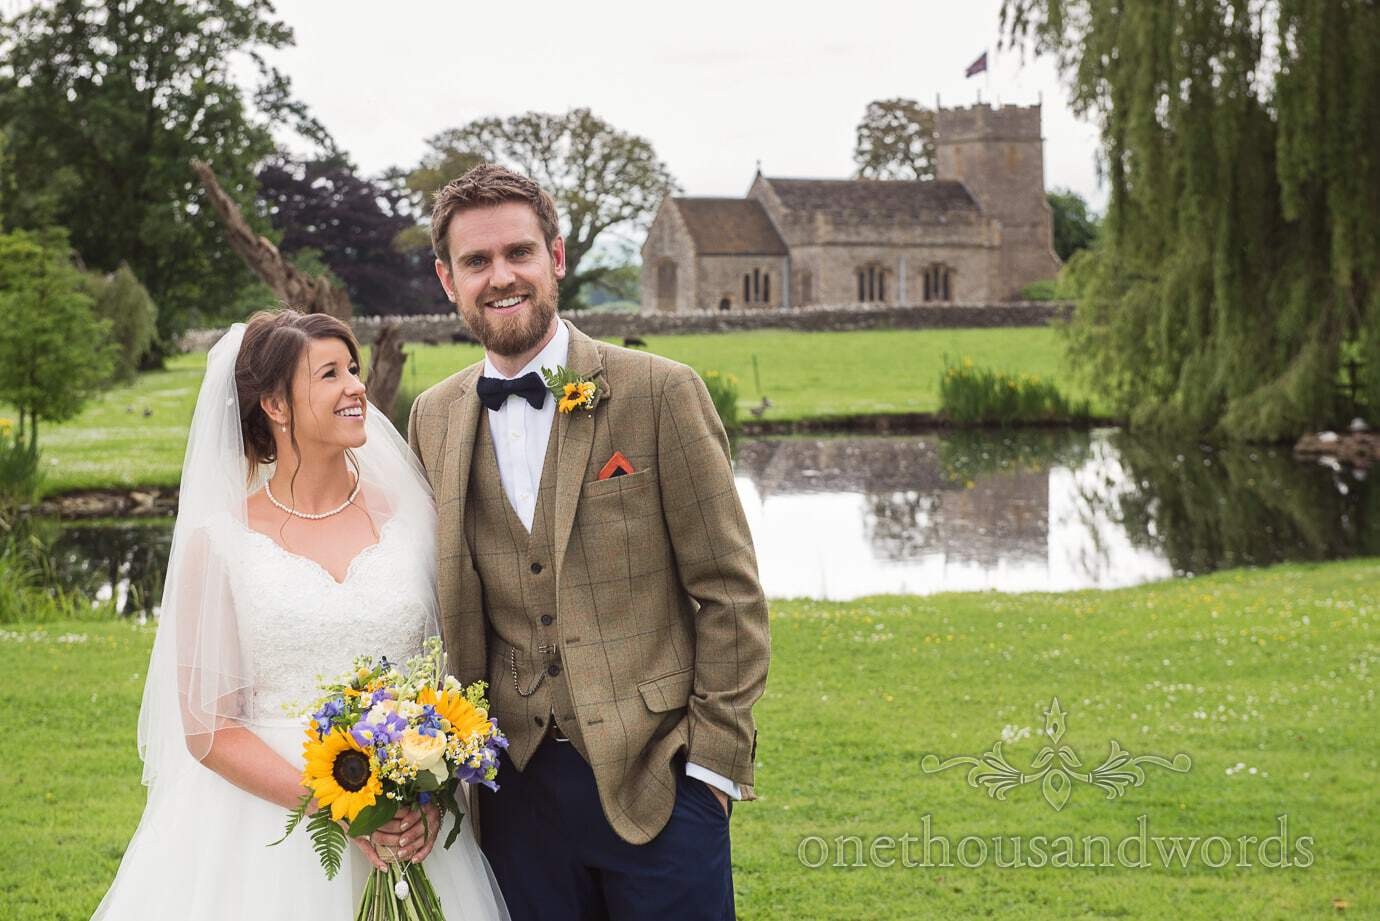 Rustic bride and groom with English countryside pond and stone church in background